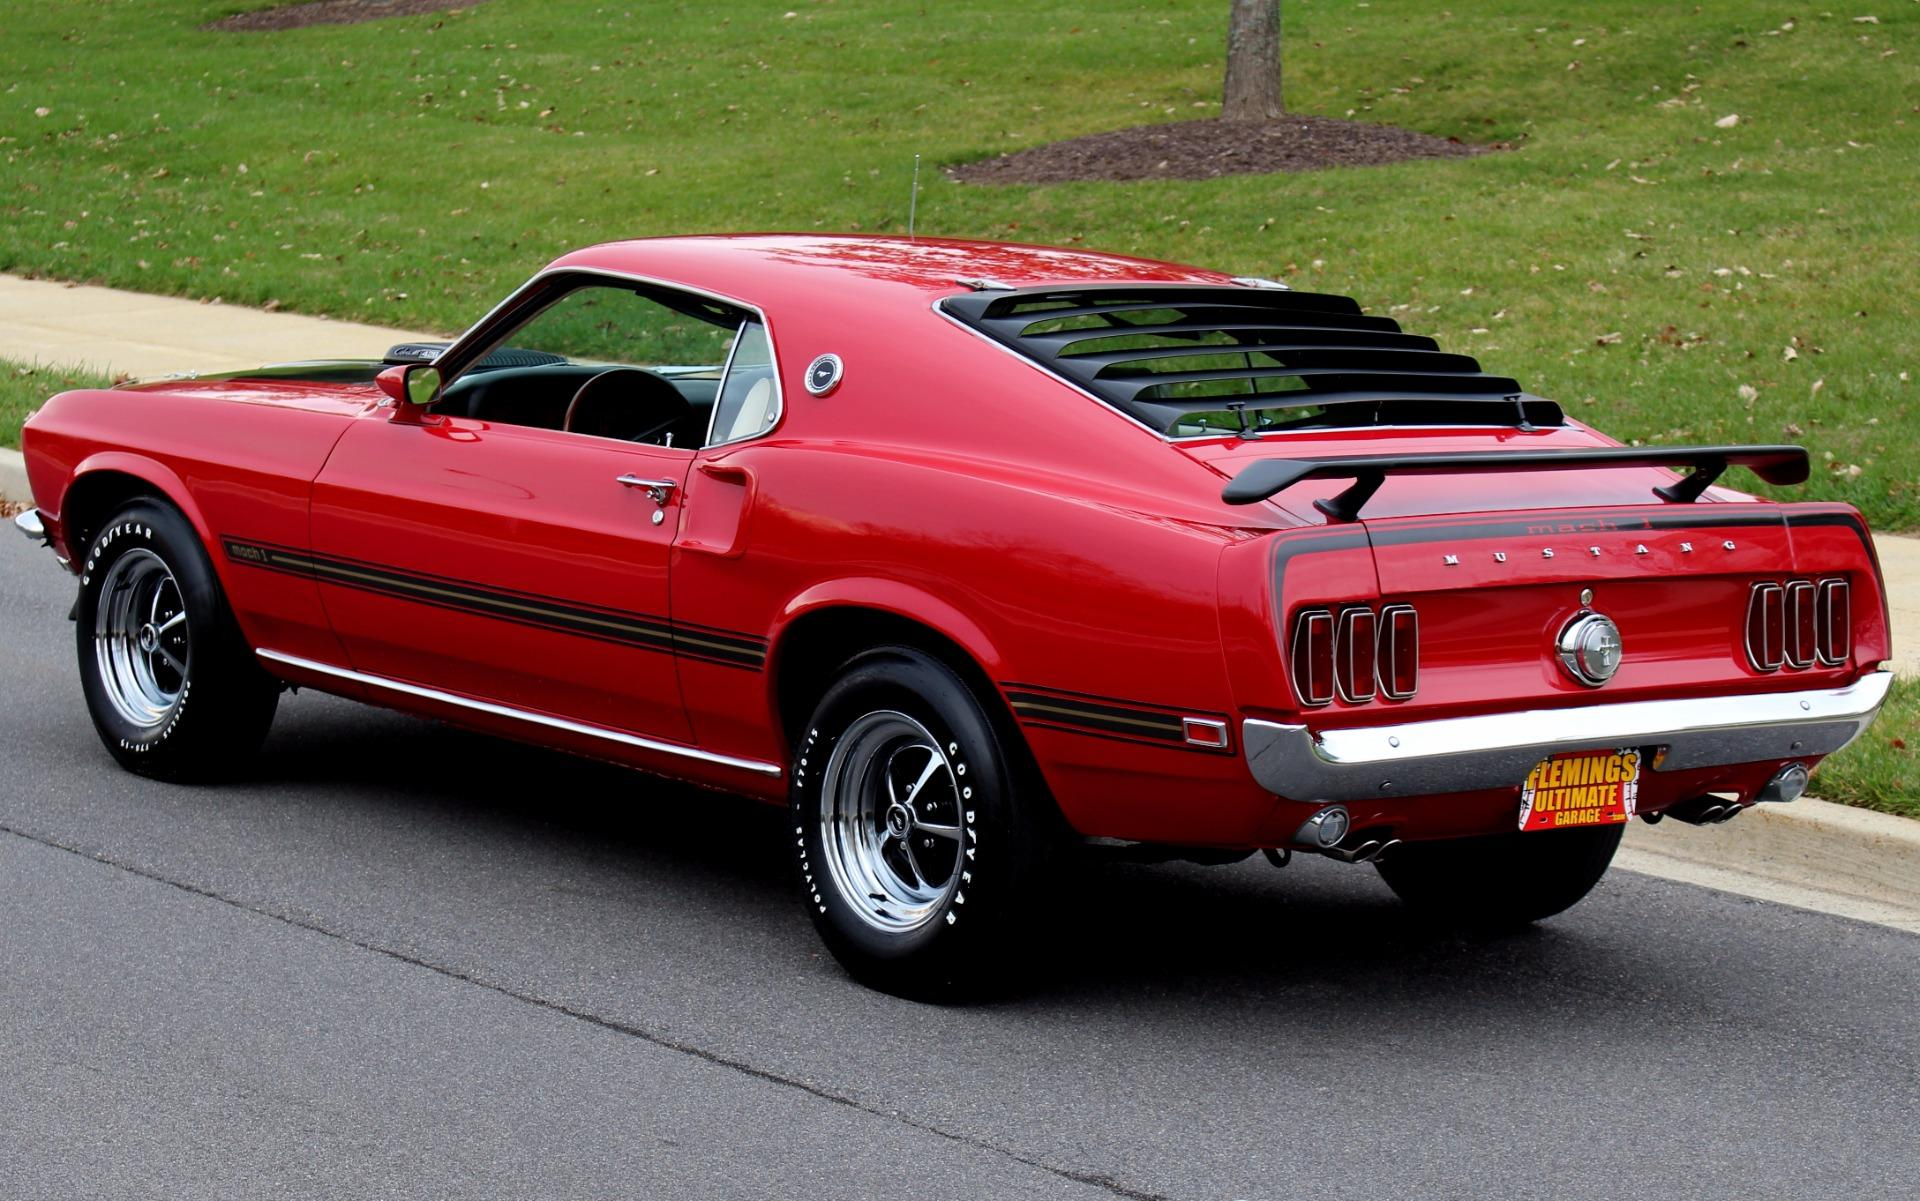 1969 Ford Mustang Mach 1 428 Cobra Jet!